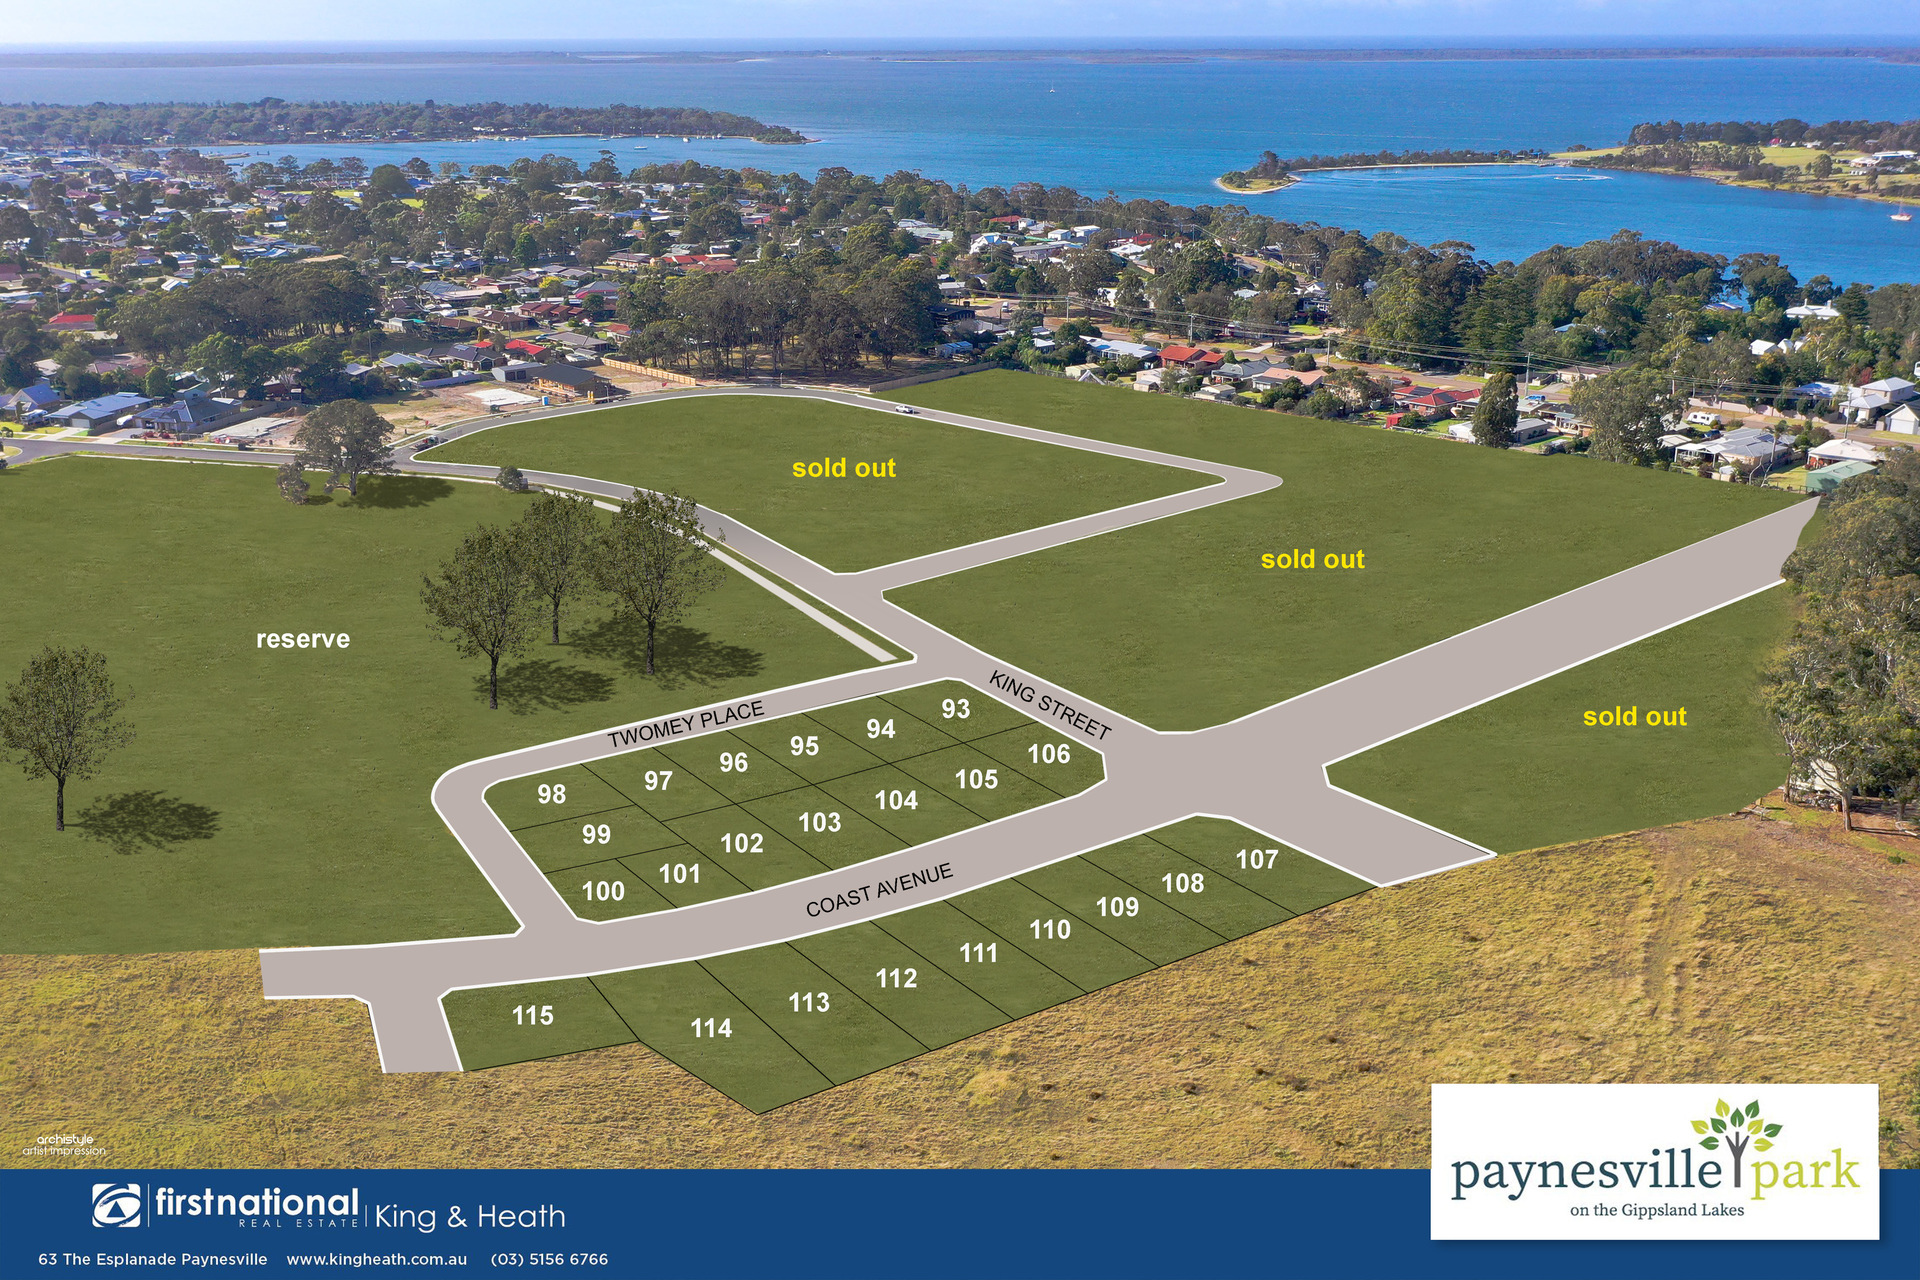 Lot 97 Twomey Place, Paynesville VIC 3880-1